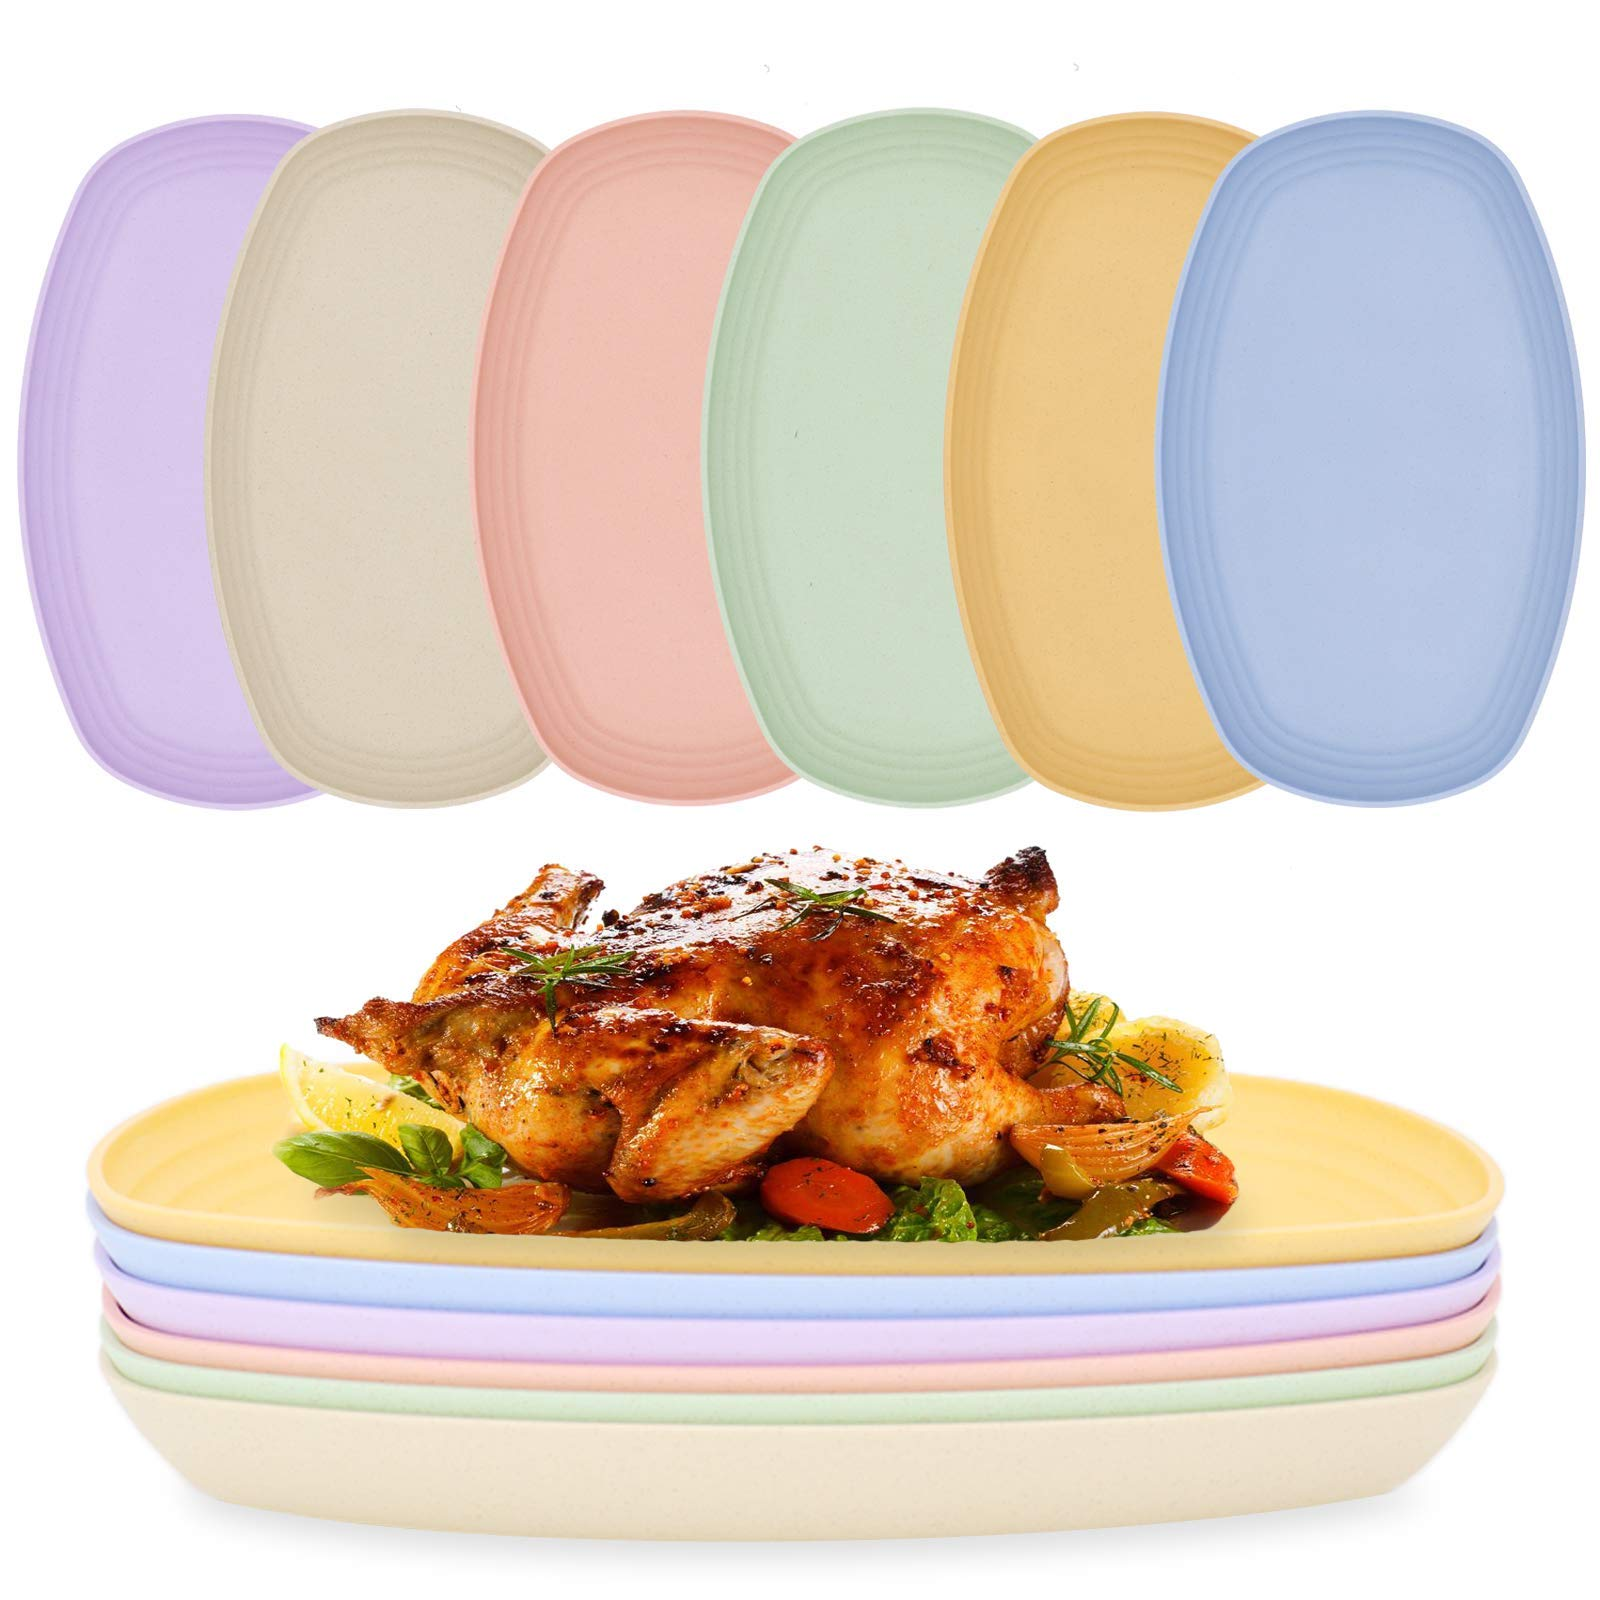 """Set of 6 Unbreakable Wheat Straw Dinner Plates, 11.5"""" Dishwasher & Microwave Safe Lunch Dishes,Reusable Eco-friendly BPA Free Lightweight Easy Clean Serving Plates Healthy for Kids Toddler & Adult"""